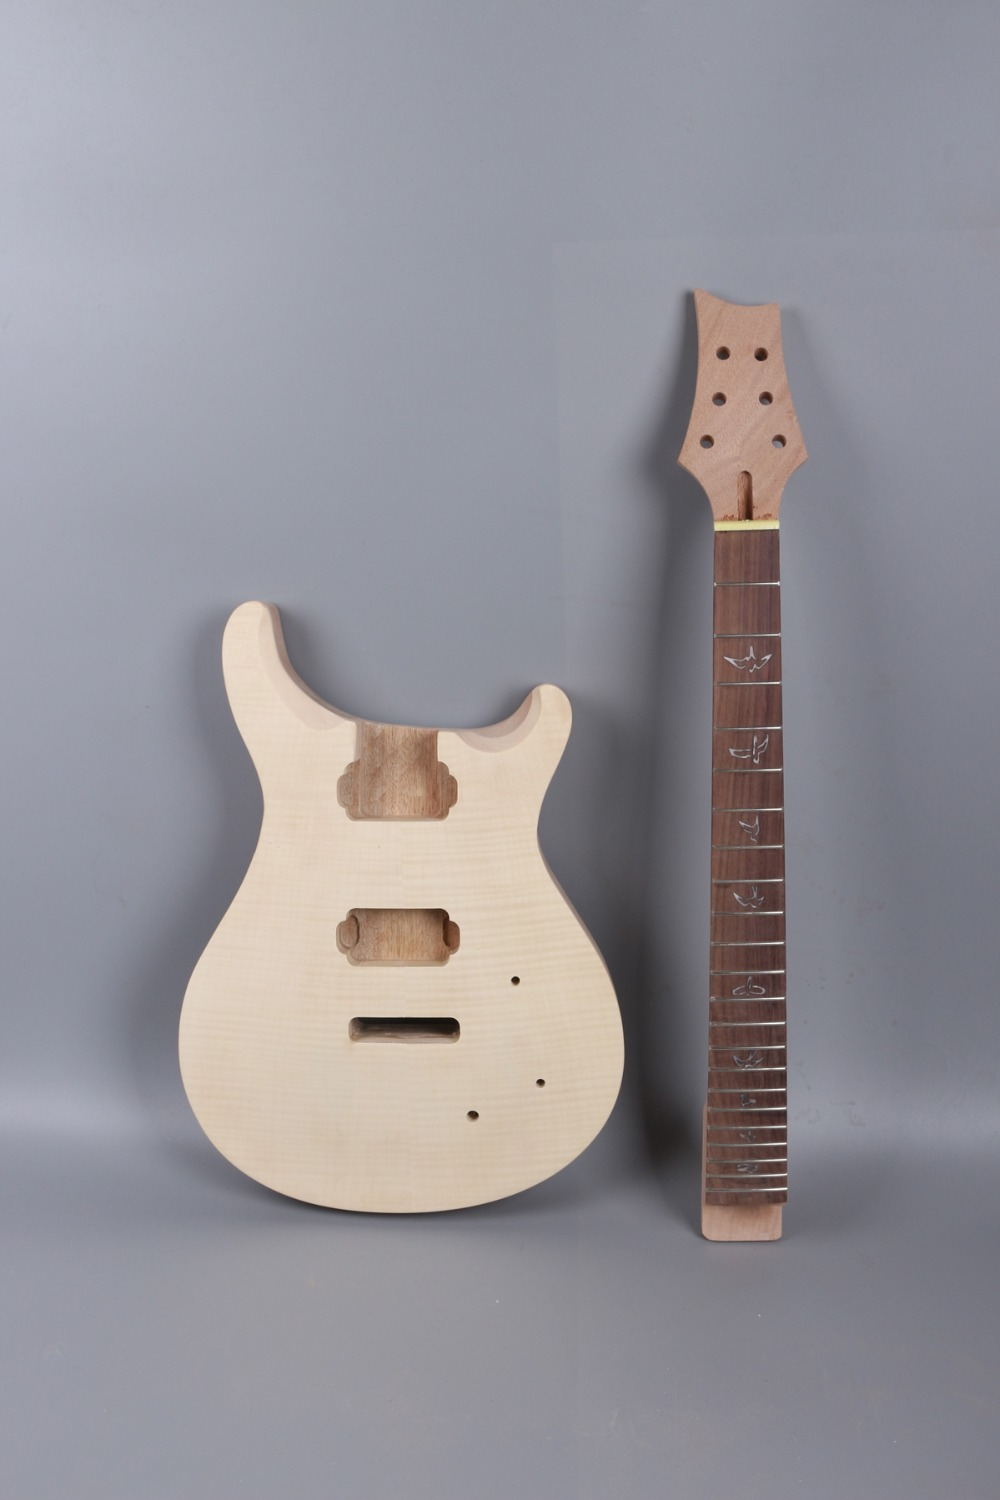 Yinfente Electric Guitar Unfinished White Electric Guitar Neck Electric Guitar Body 22 fret 24.75 Inch one tl electric guitar neck 25 5 inch 22 fret maple made and rosewood fingerboard bindding also have 21 fret